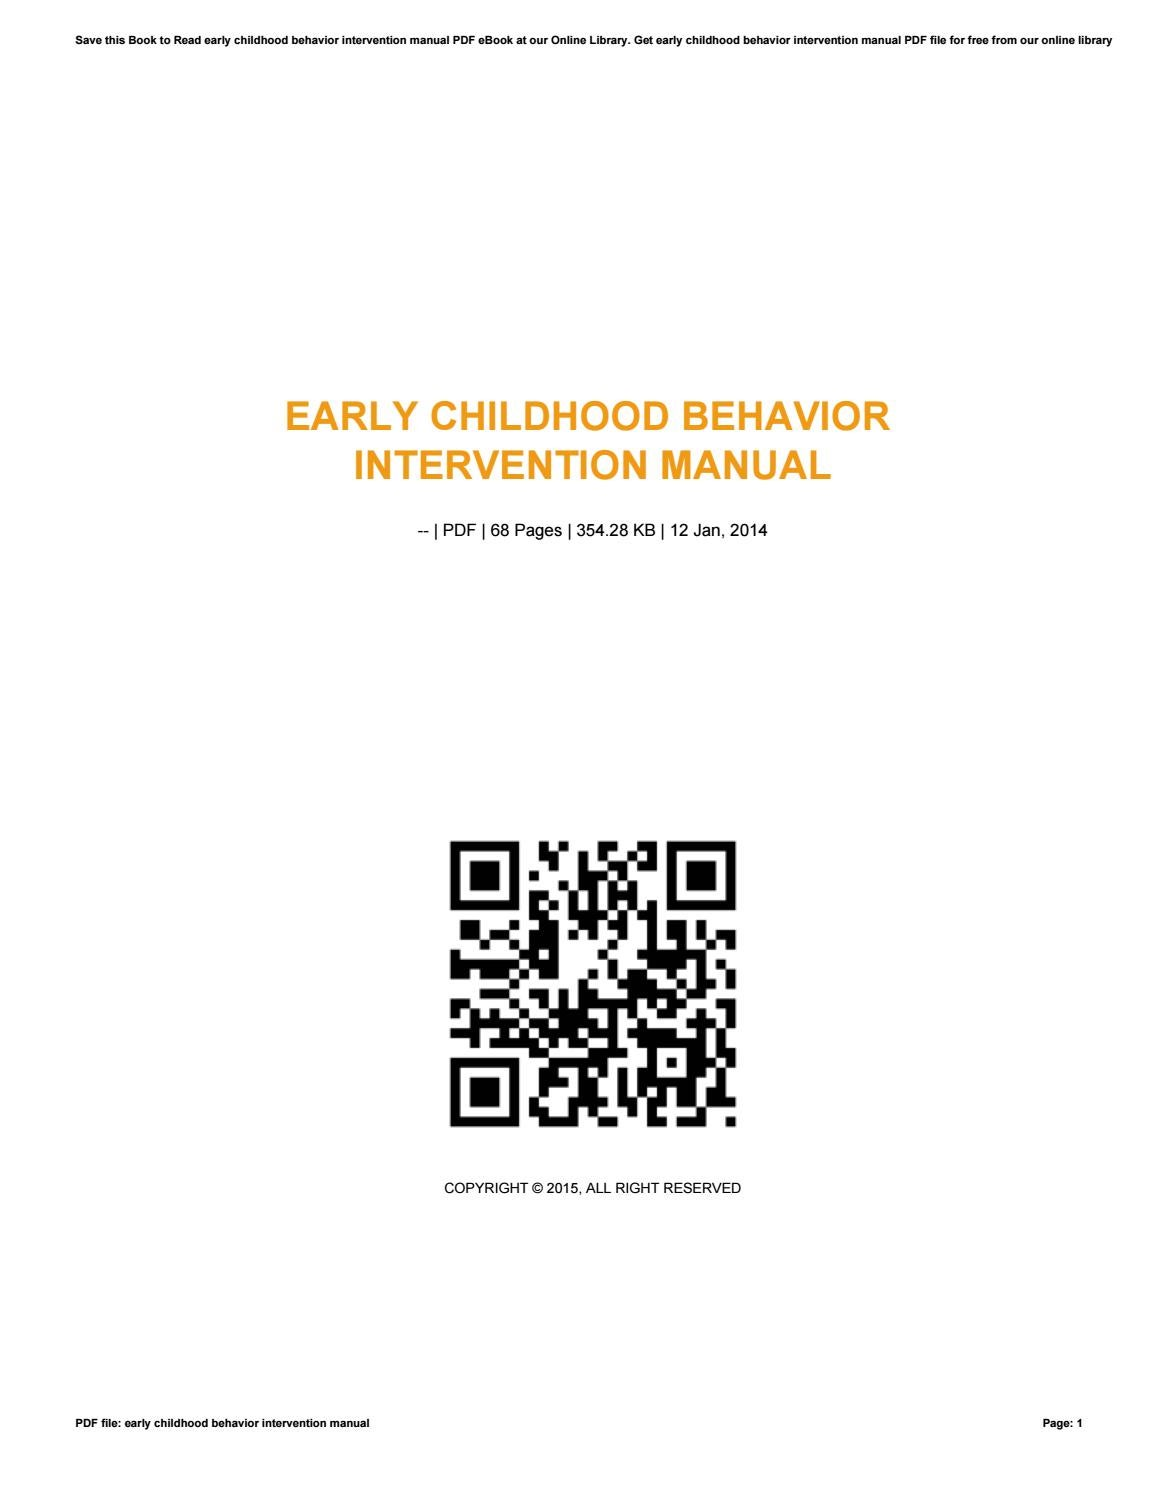 early childhood behavior intervention manual by te51 issuu rh issuu com First Aid Manual OSHA Safety Manual